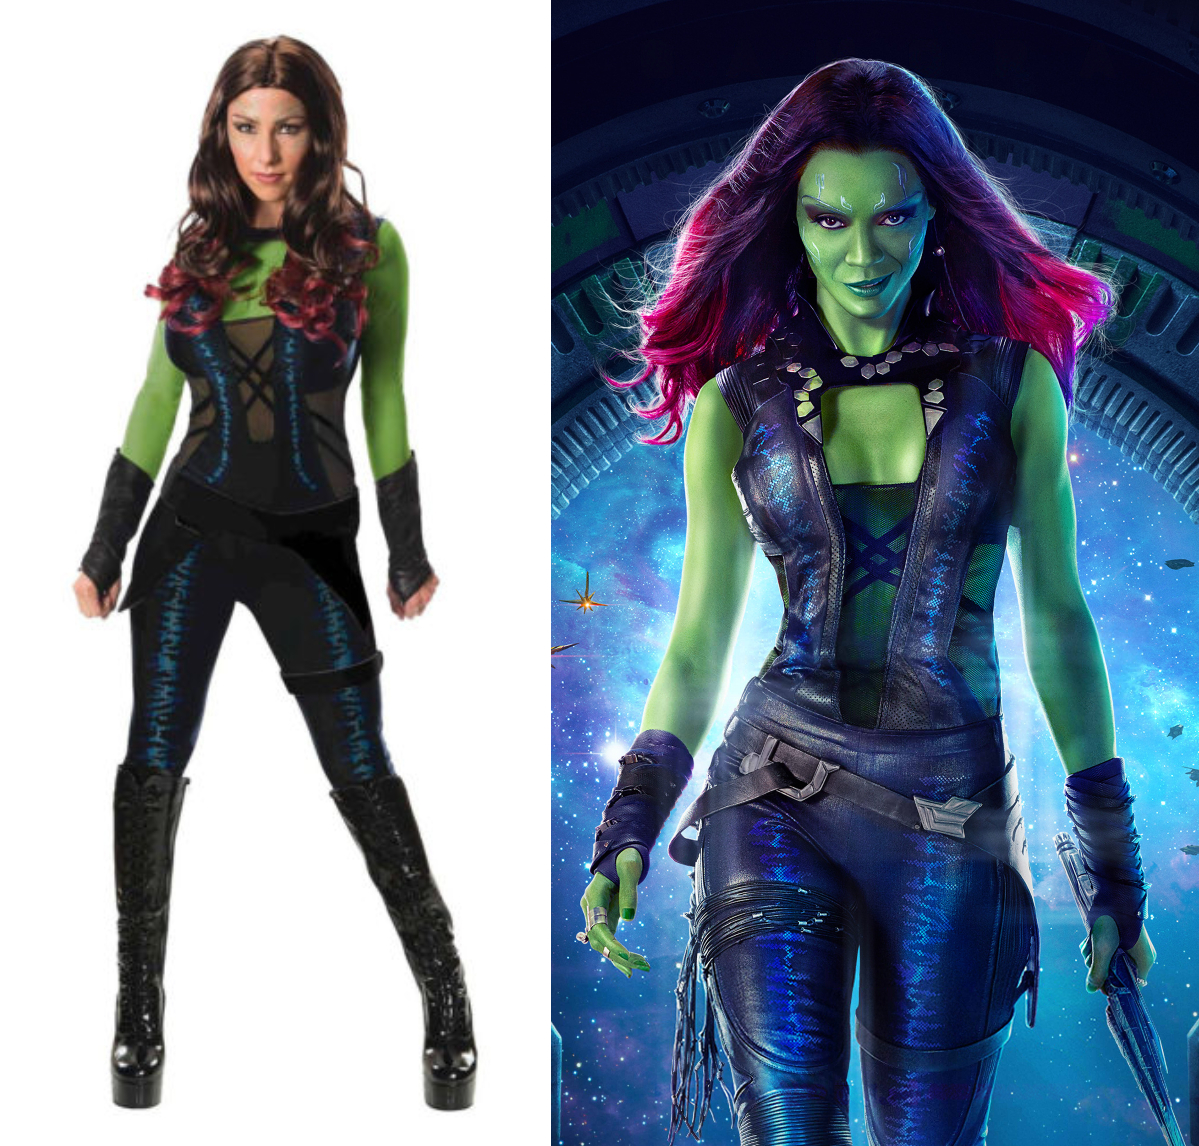 geek costume ideas for women | Gamora